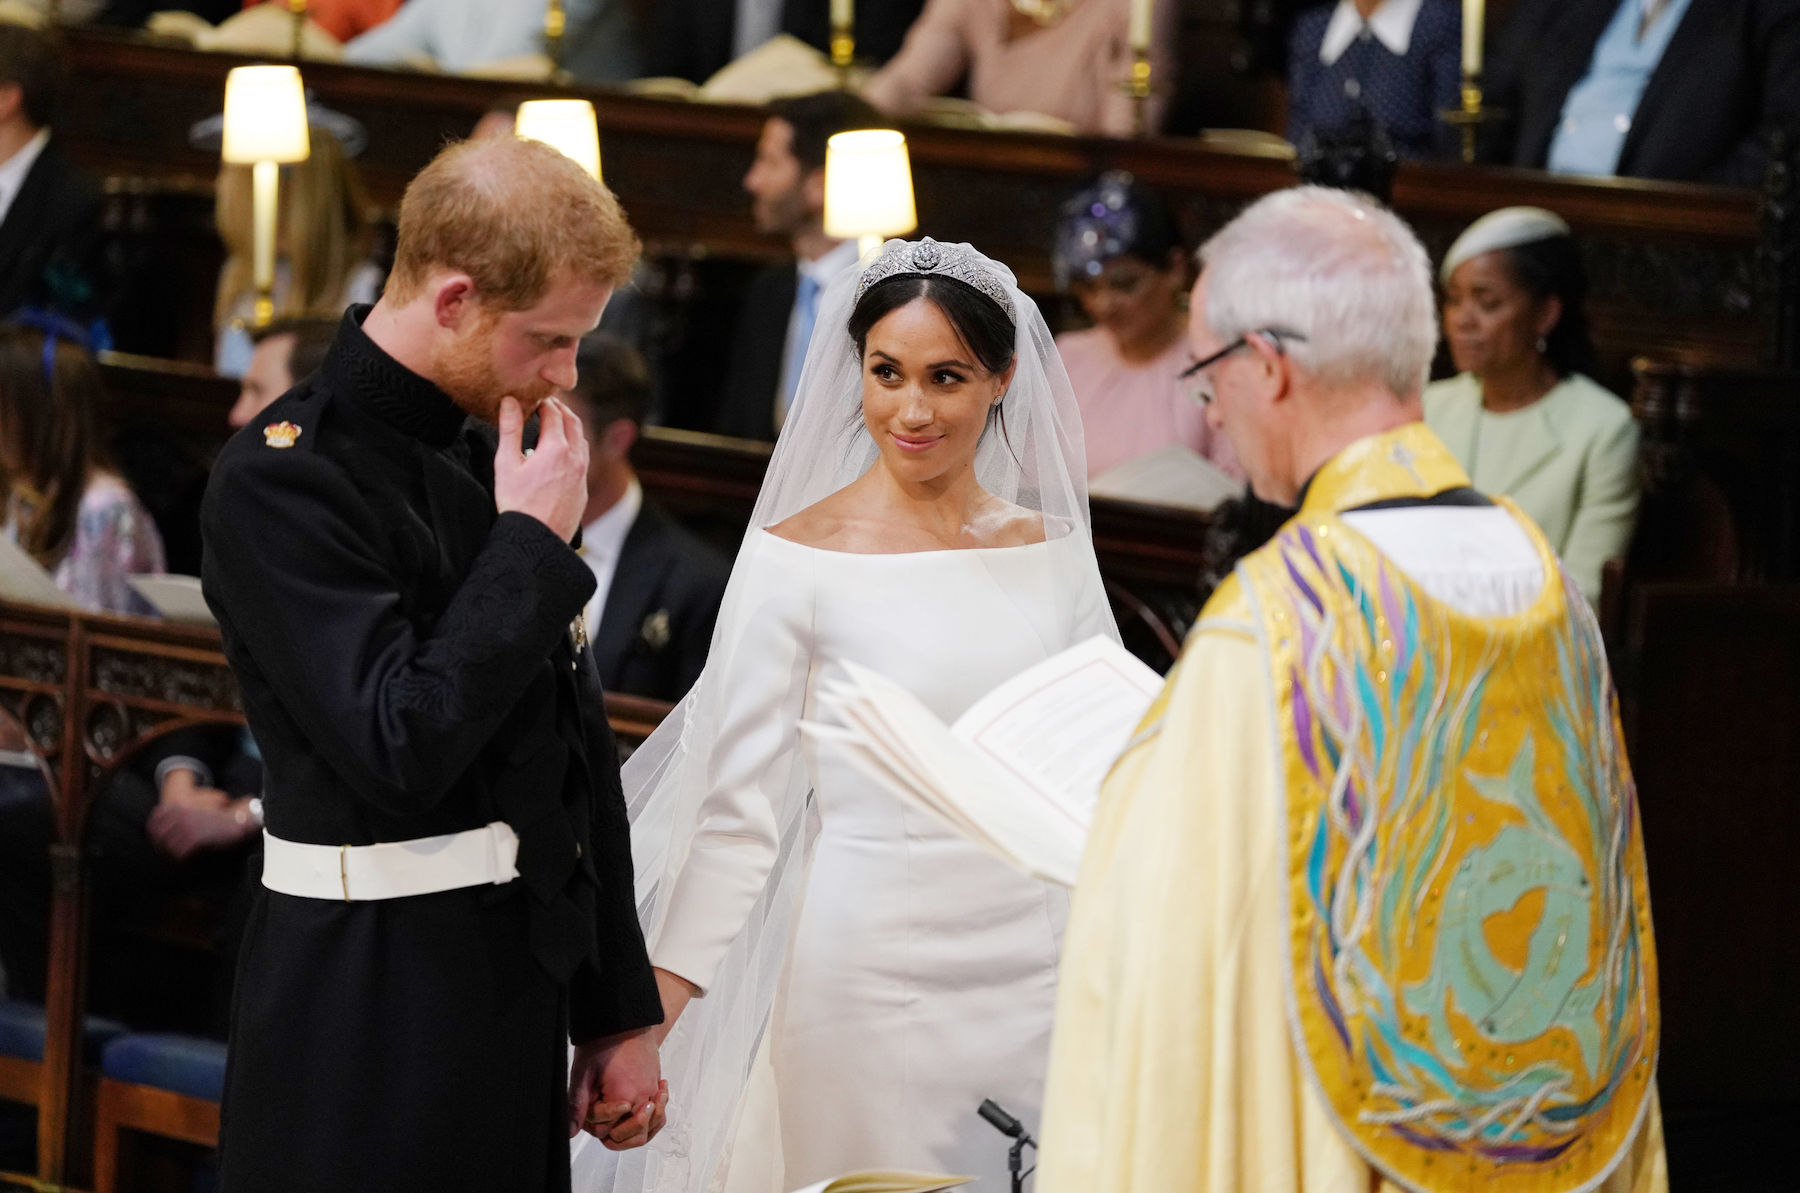 <div class='meta'><div class='origin-logo' data-origin='Creative Content'></div><span class='caption-text' data-credit='WPA Pool/Getty Images'>Prince Harry and Meghan Markle during their wedding service, conducted by the Archbishop of Canterbury Justin Welby in St George's Chapel.</span></div>